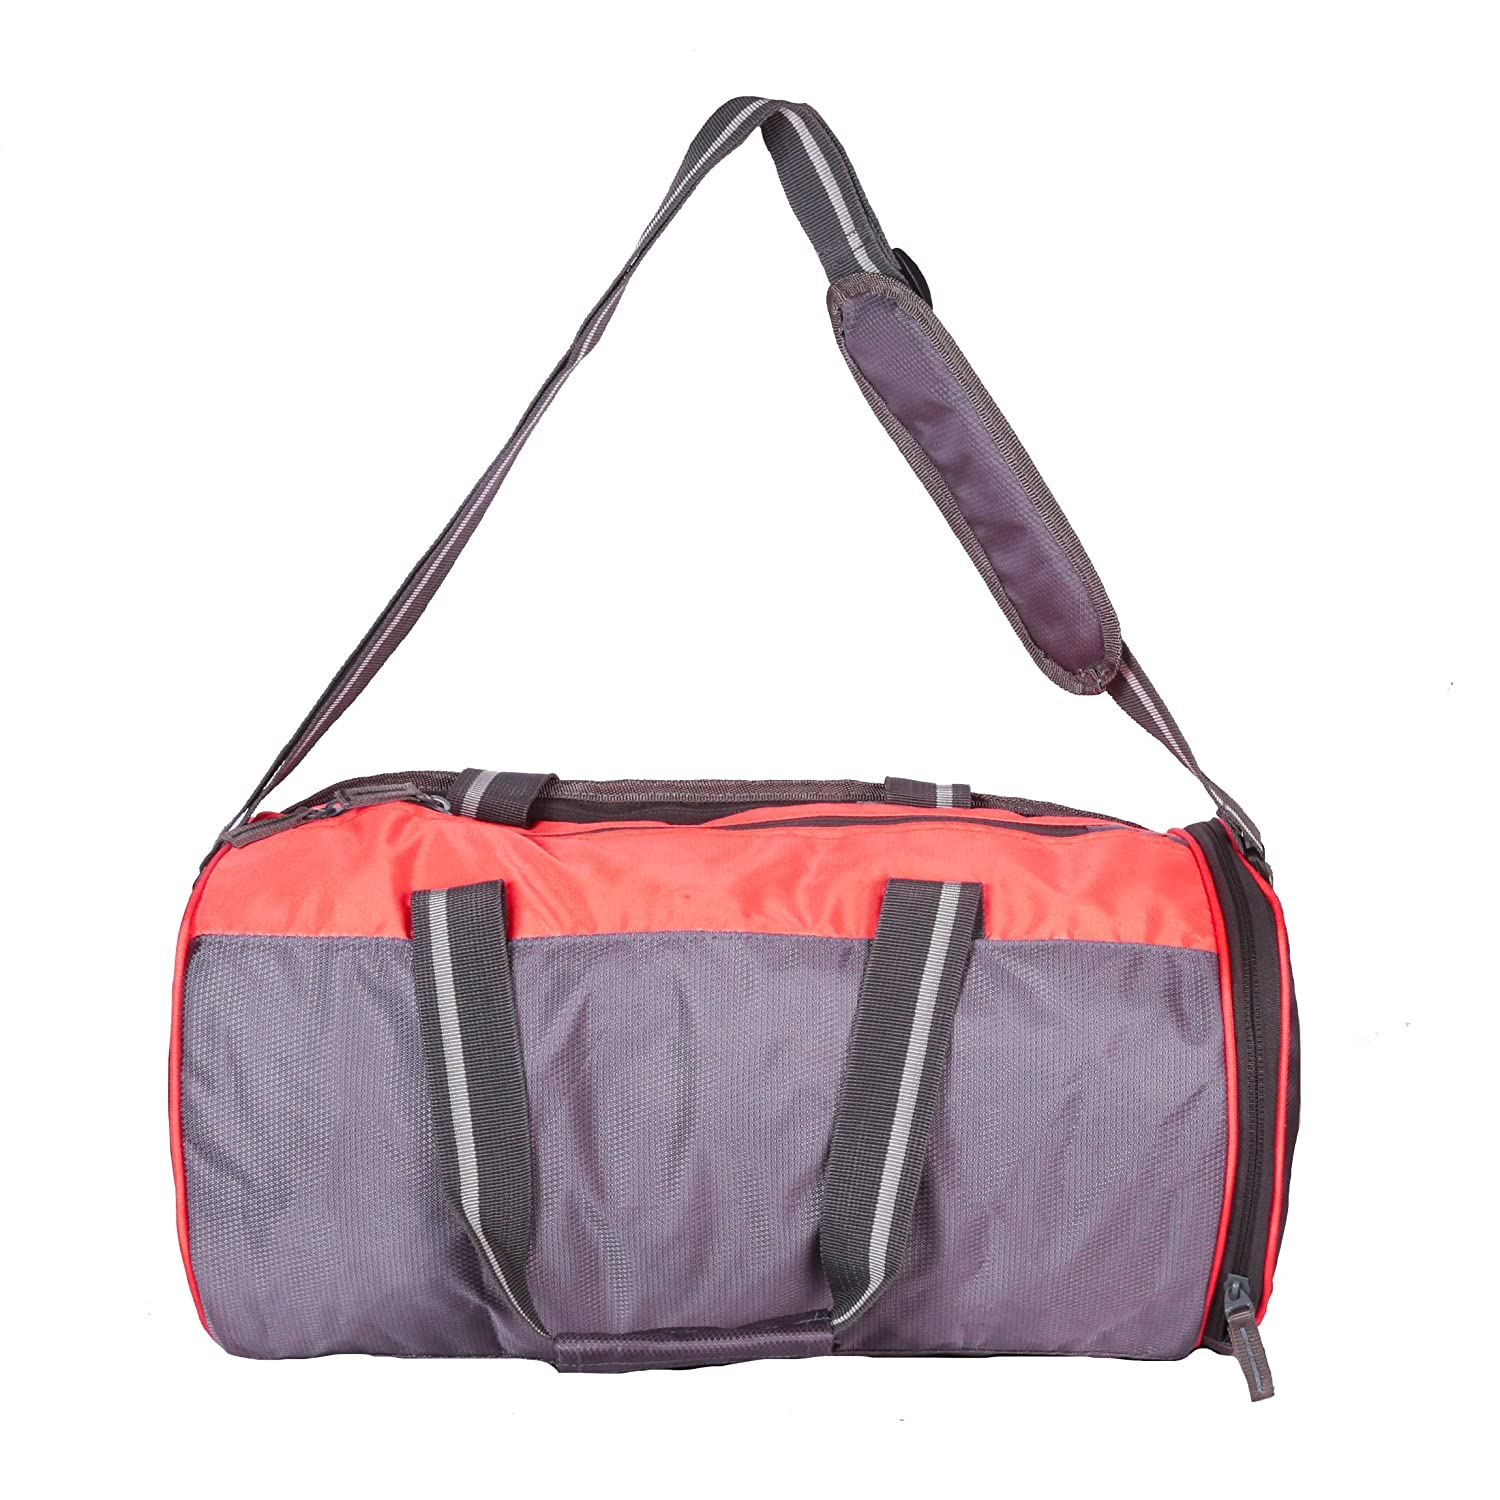 Yark Polyester 43.9928 cms Red Gym Shoulder Bag (Y2003RED)  Amazon.in  Bags 766f082b83ff9